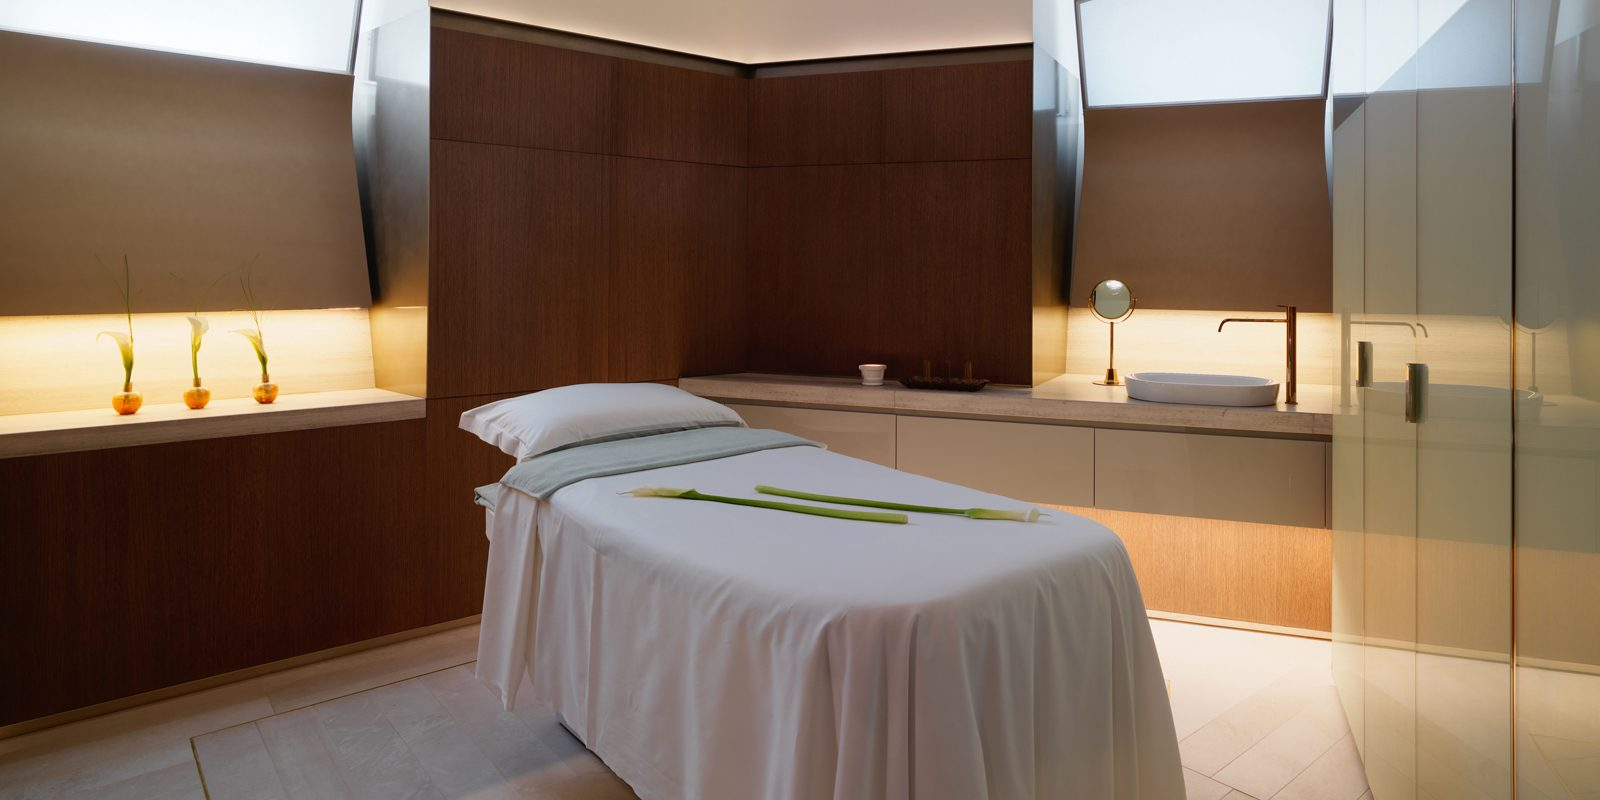 Make good use of your spa credit